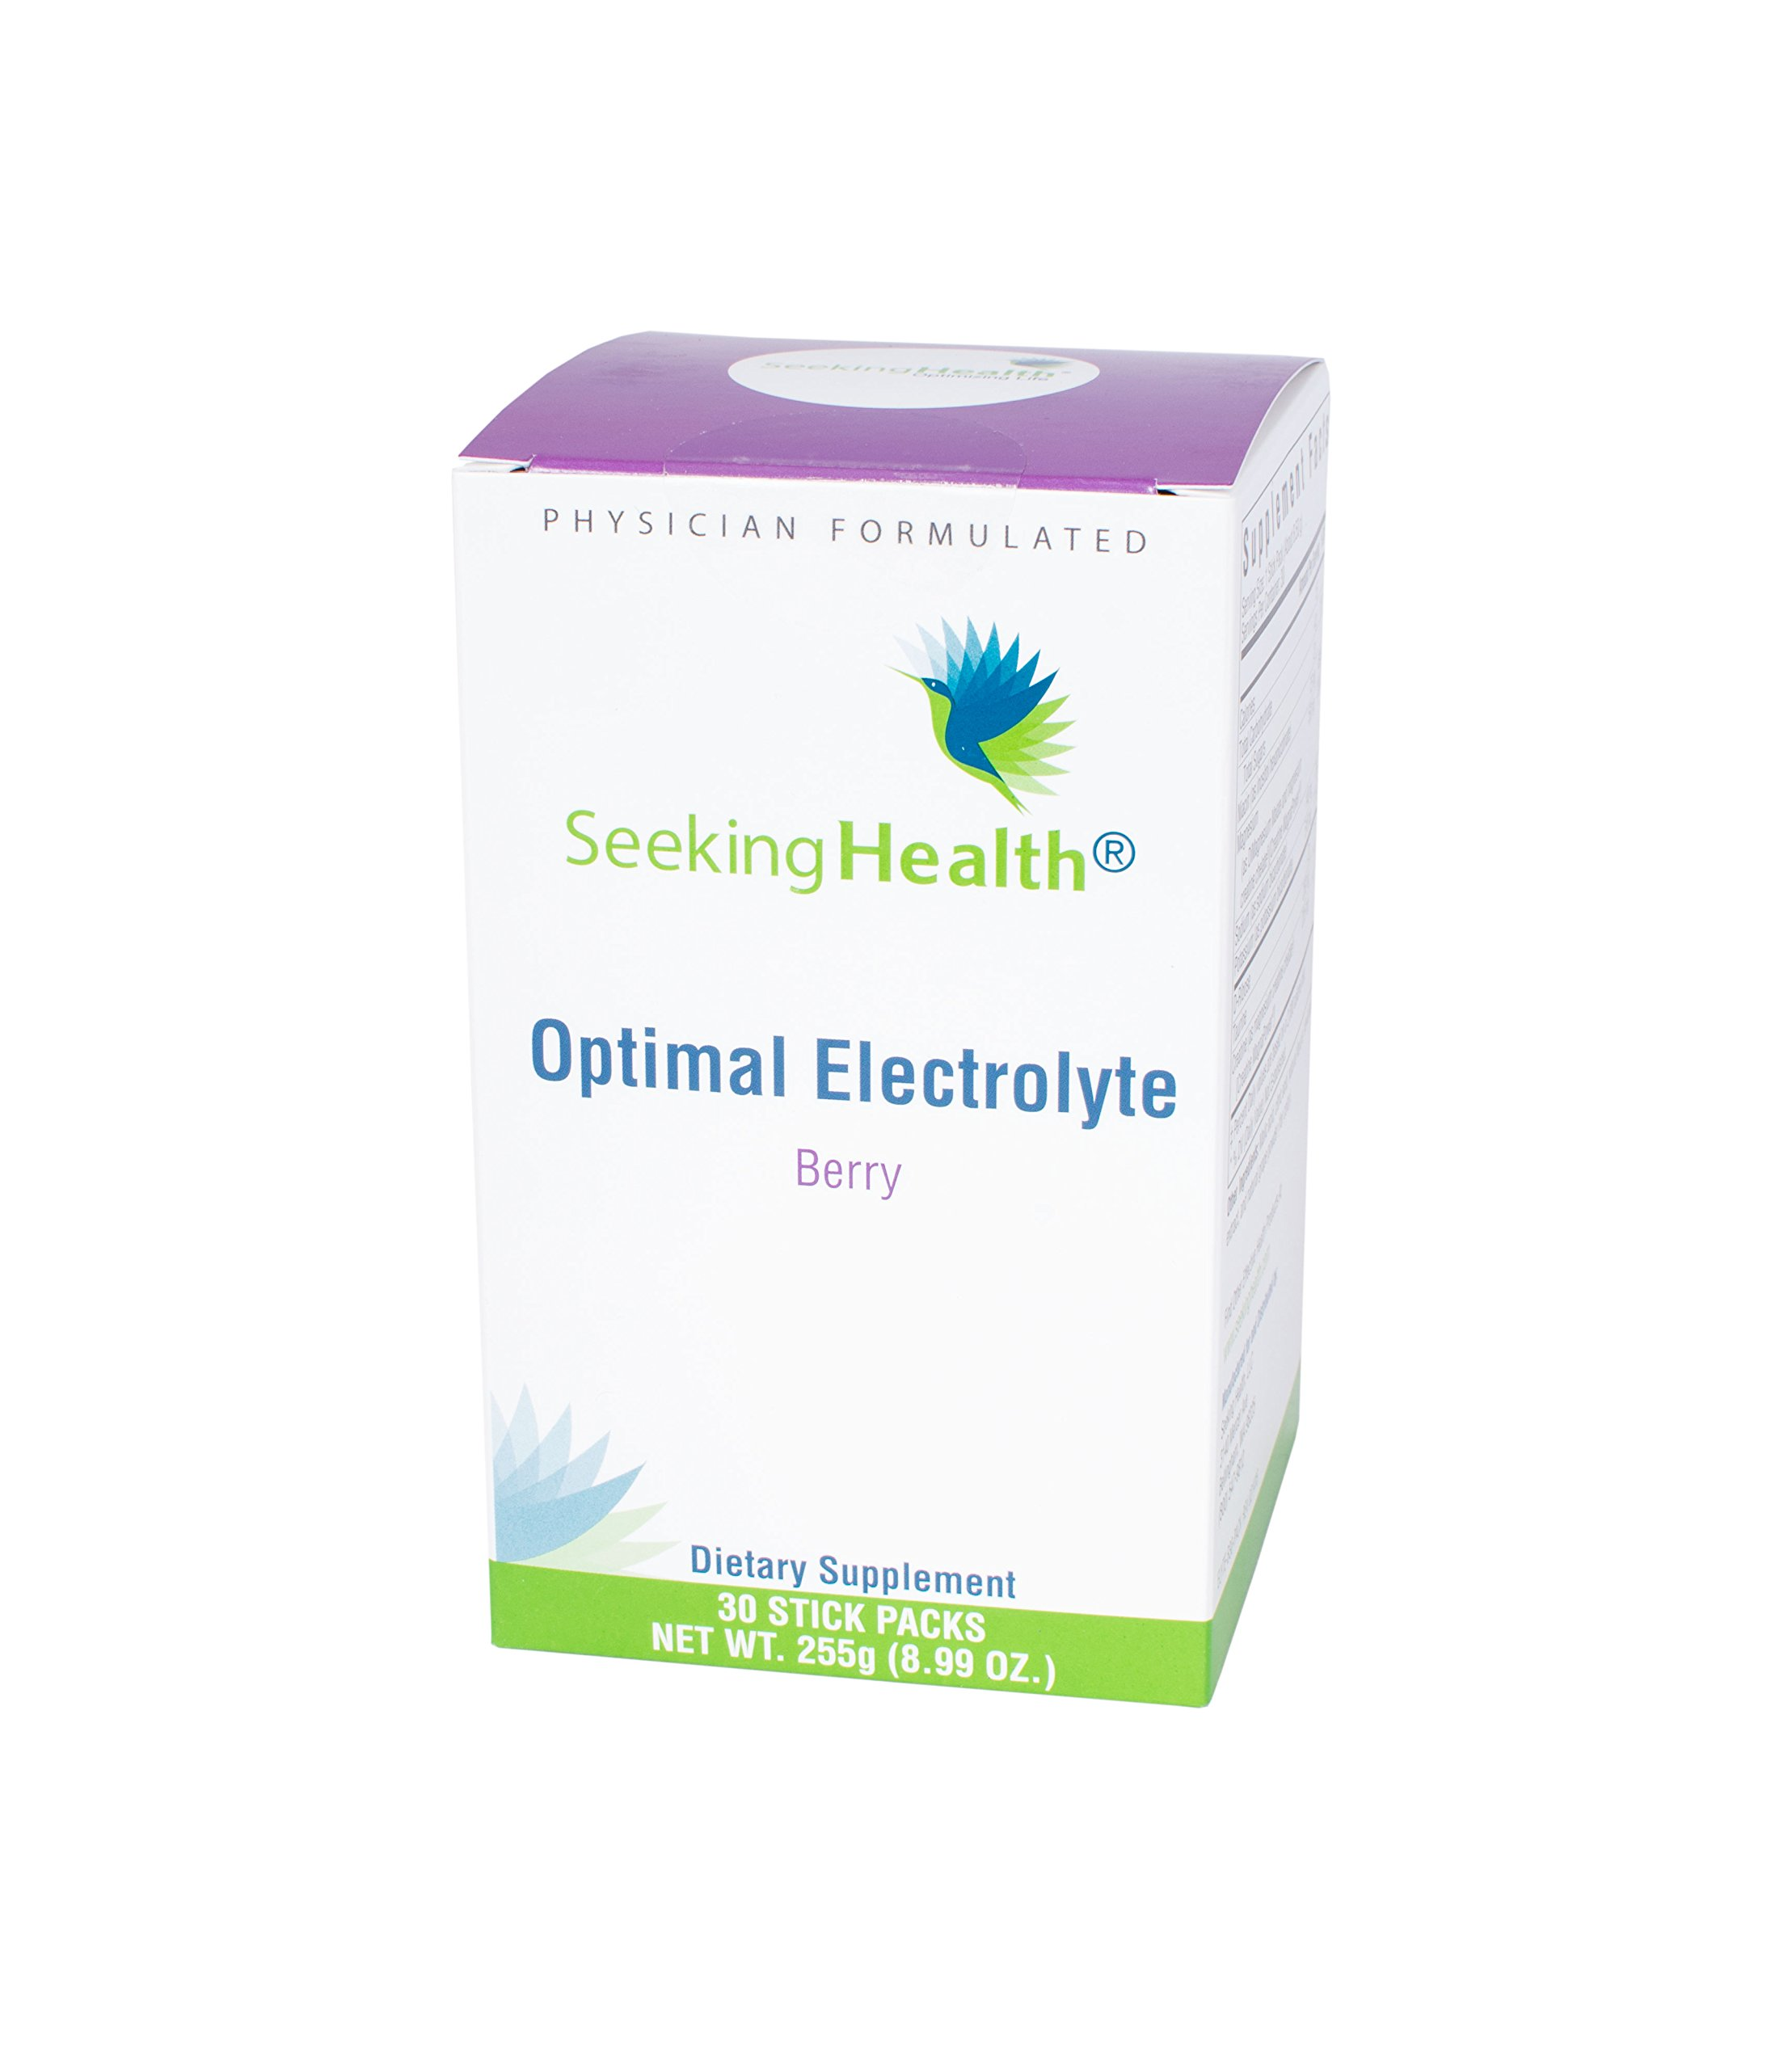 Seeking Health | Optimal Electrolyte Replacement | Berry-Flavored Vegan Electrolyte Powder | 30 Single-Serving Packets